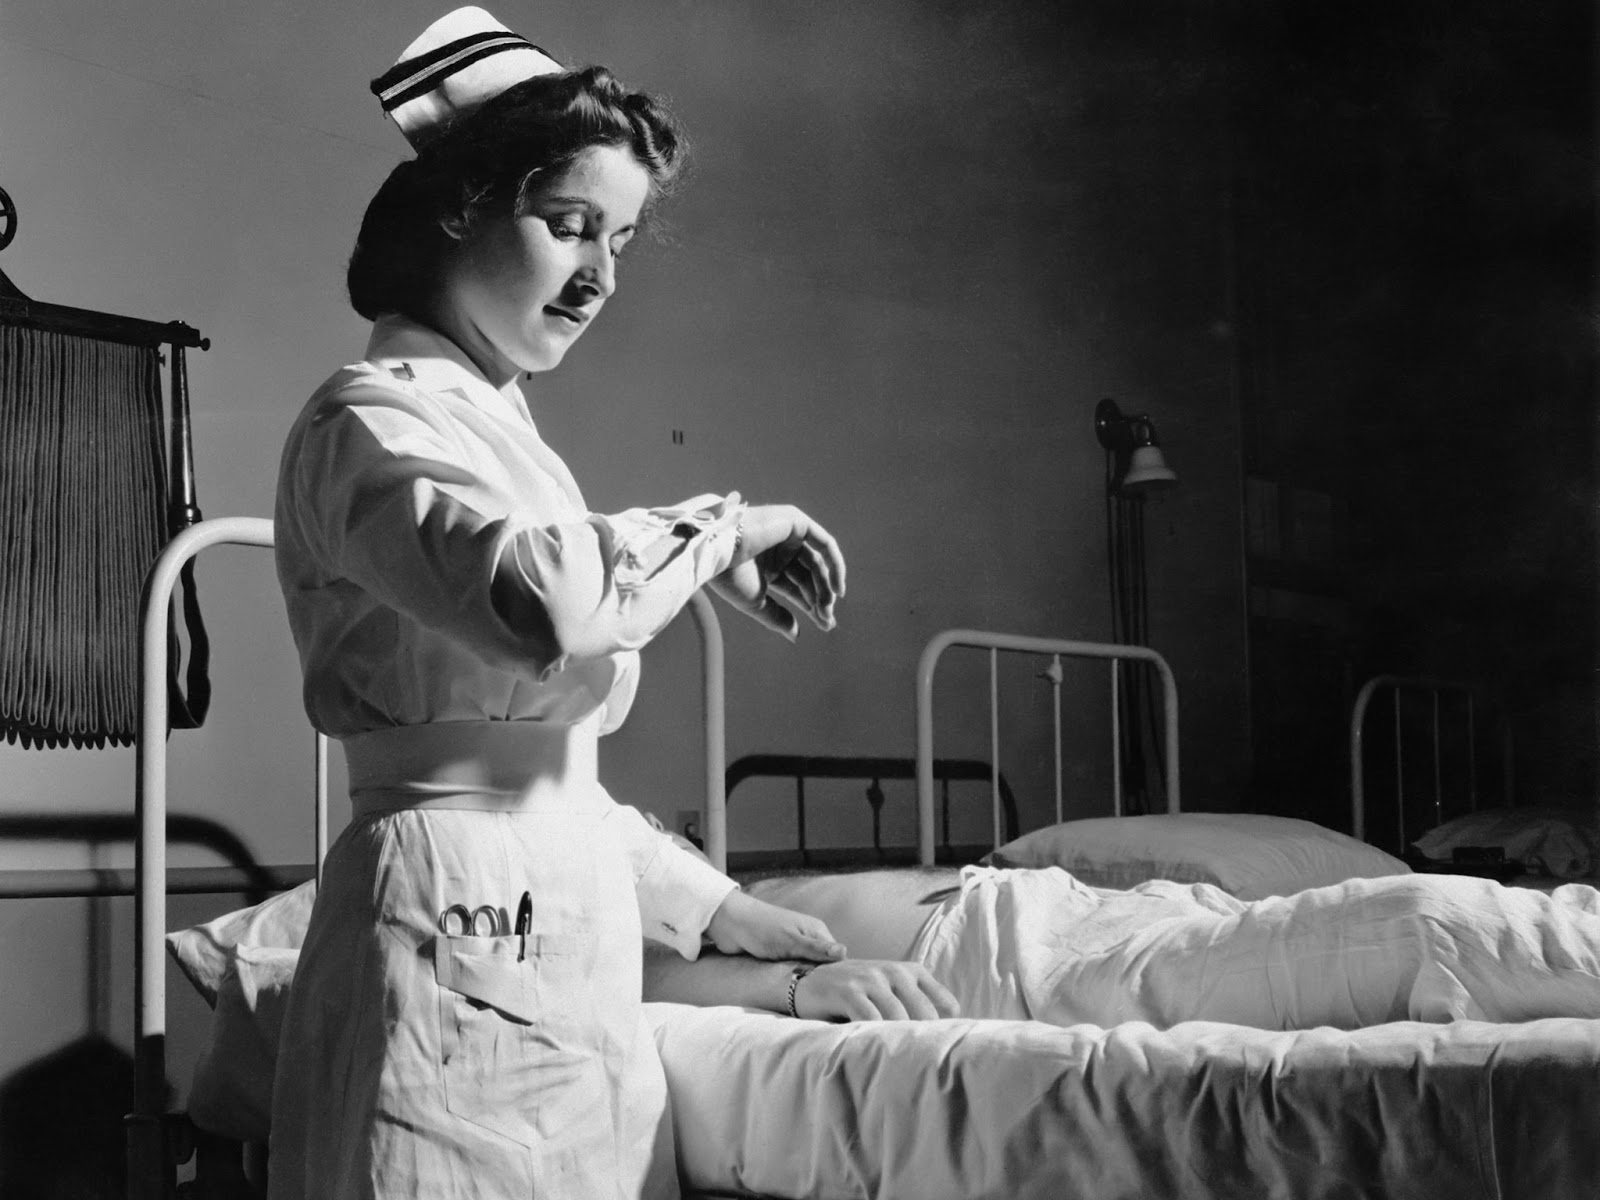 Nursing is a noble profession that makes a difference to countless lives daily.